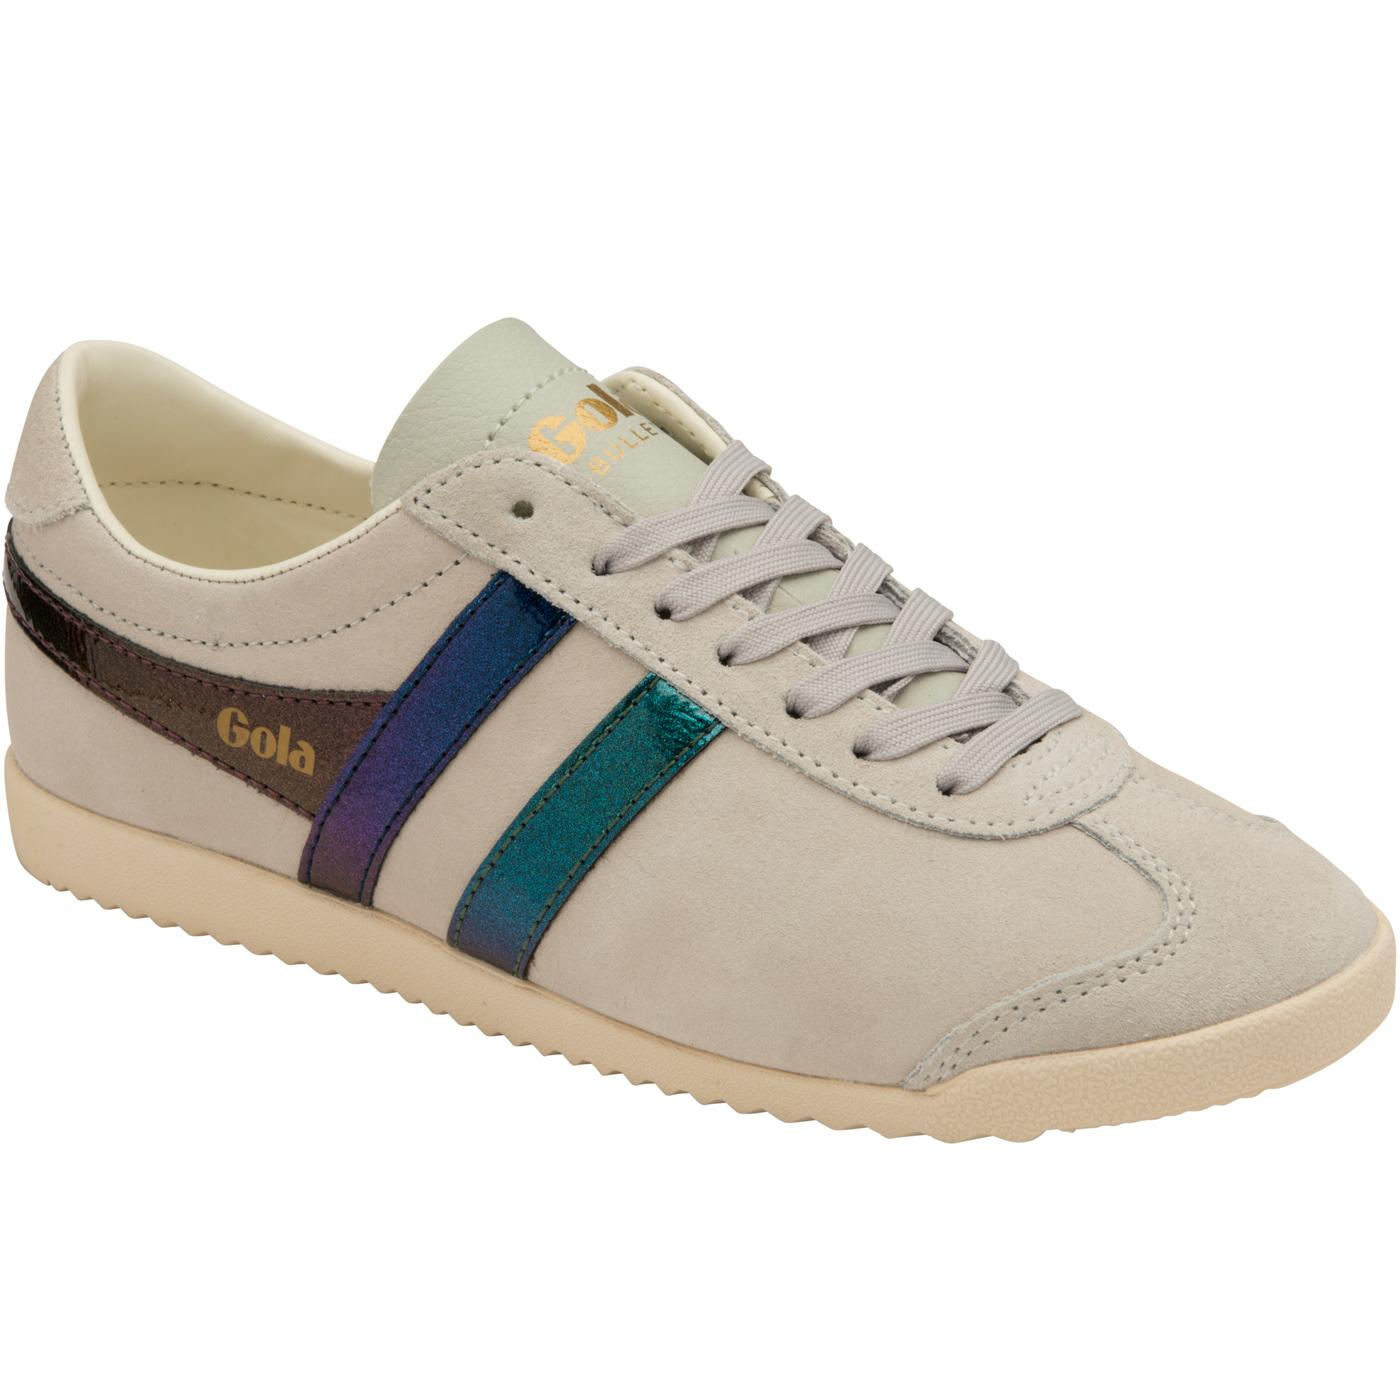 Bullet Flash GOLA Women's Retro Suede Trainers OW